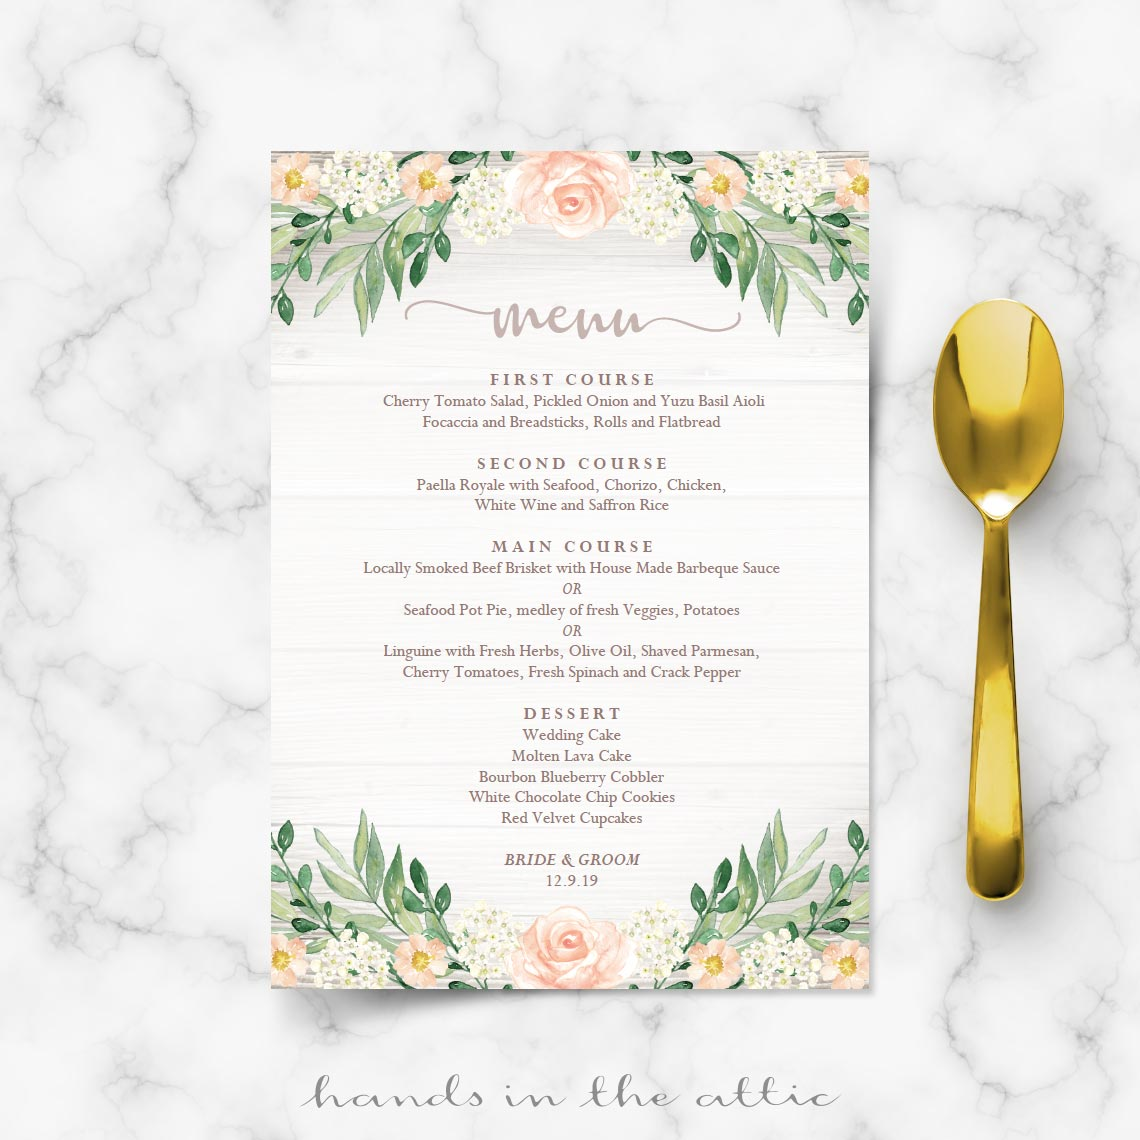 Wedding Menu Template | Floral Wedding Reception Menu Template Wedding Menu Cards Hands